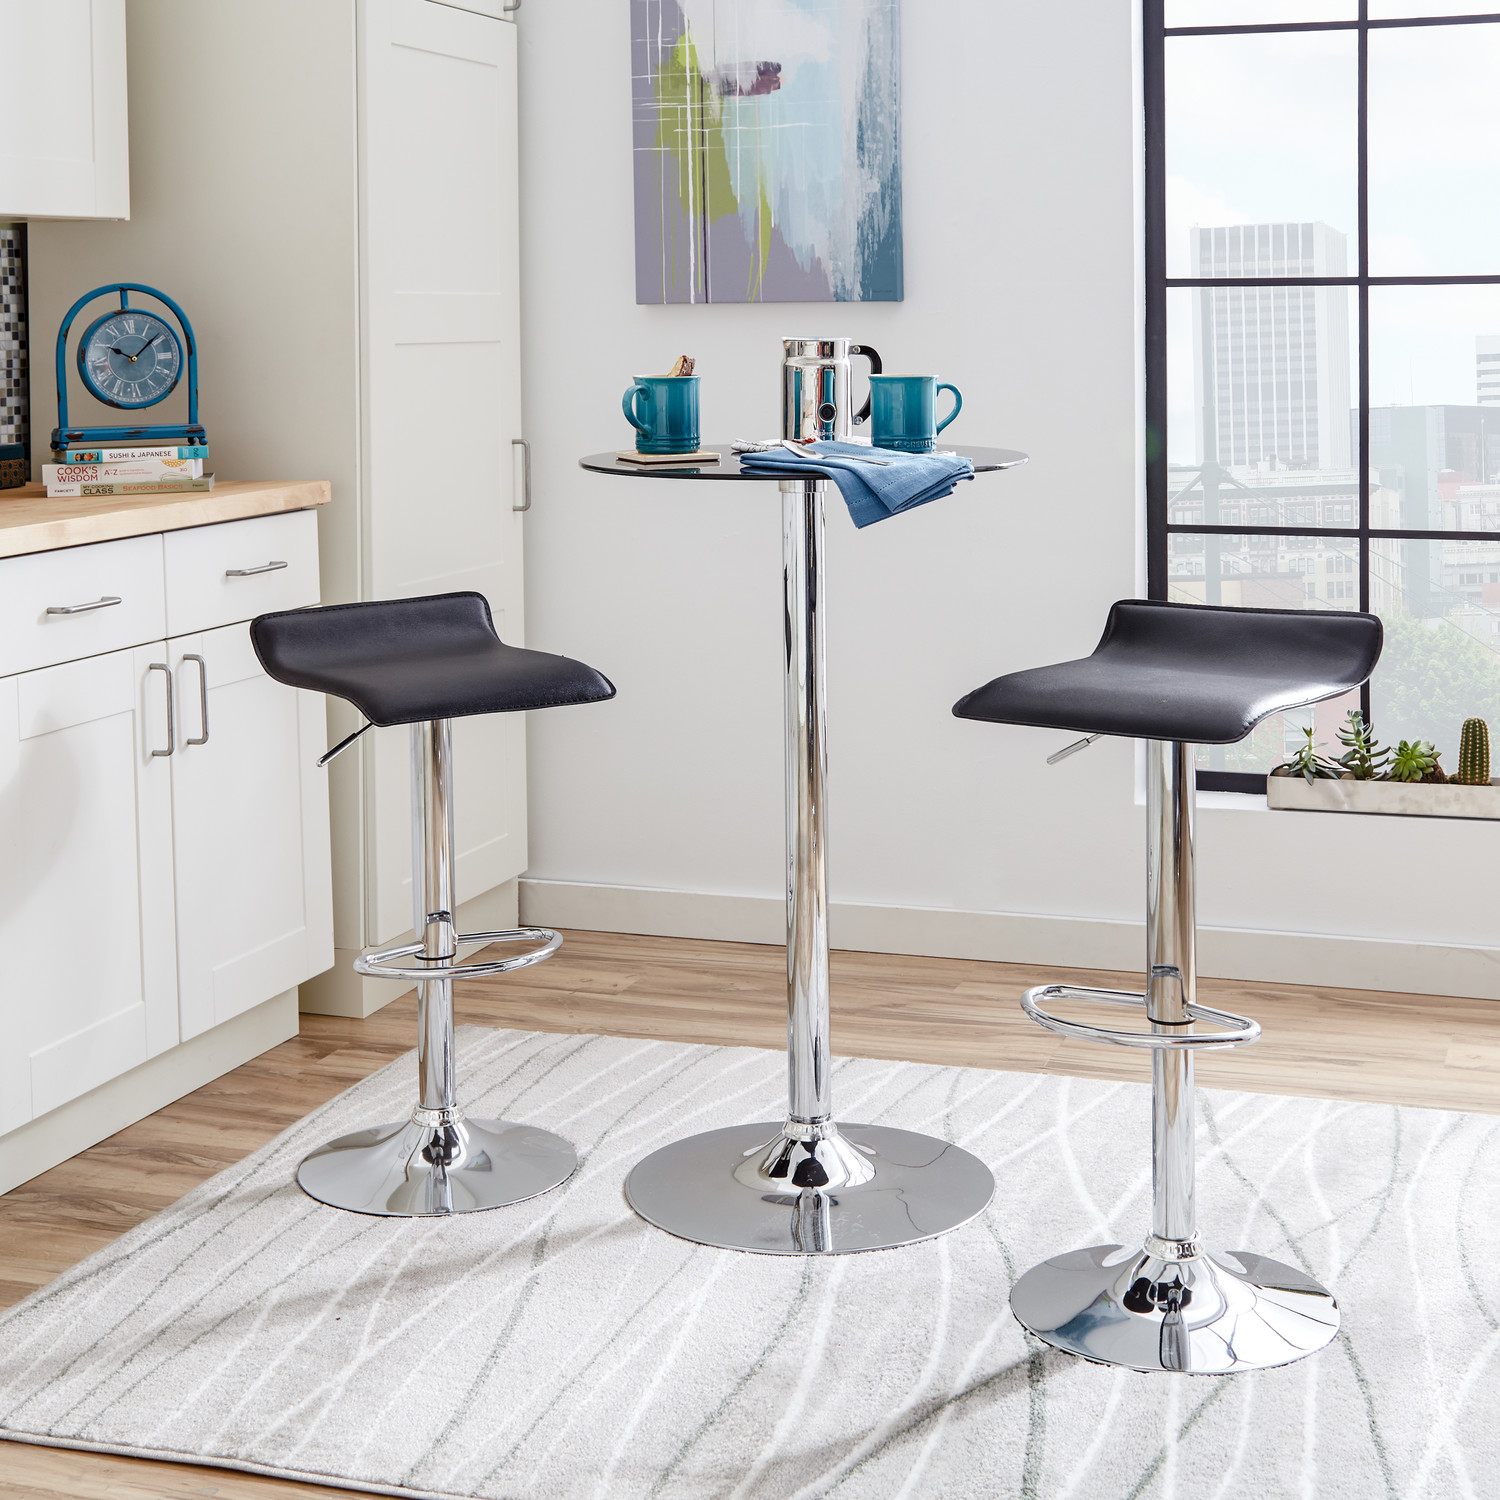 Modern Counter Height Stools 4 Contemporary Backless Counter Height Bar Stools For